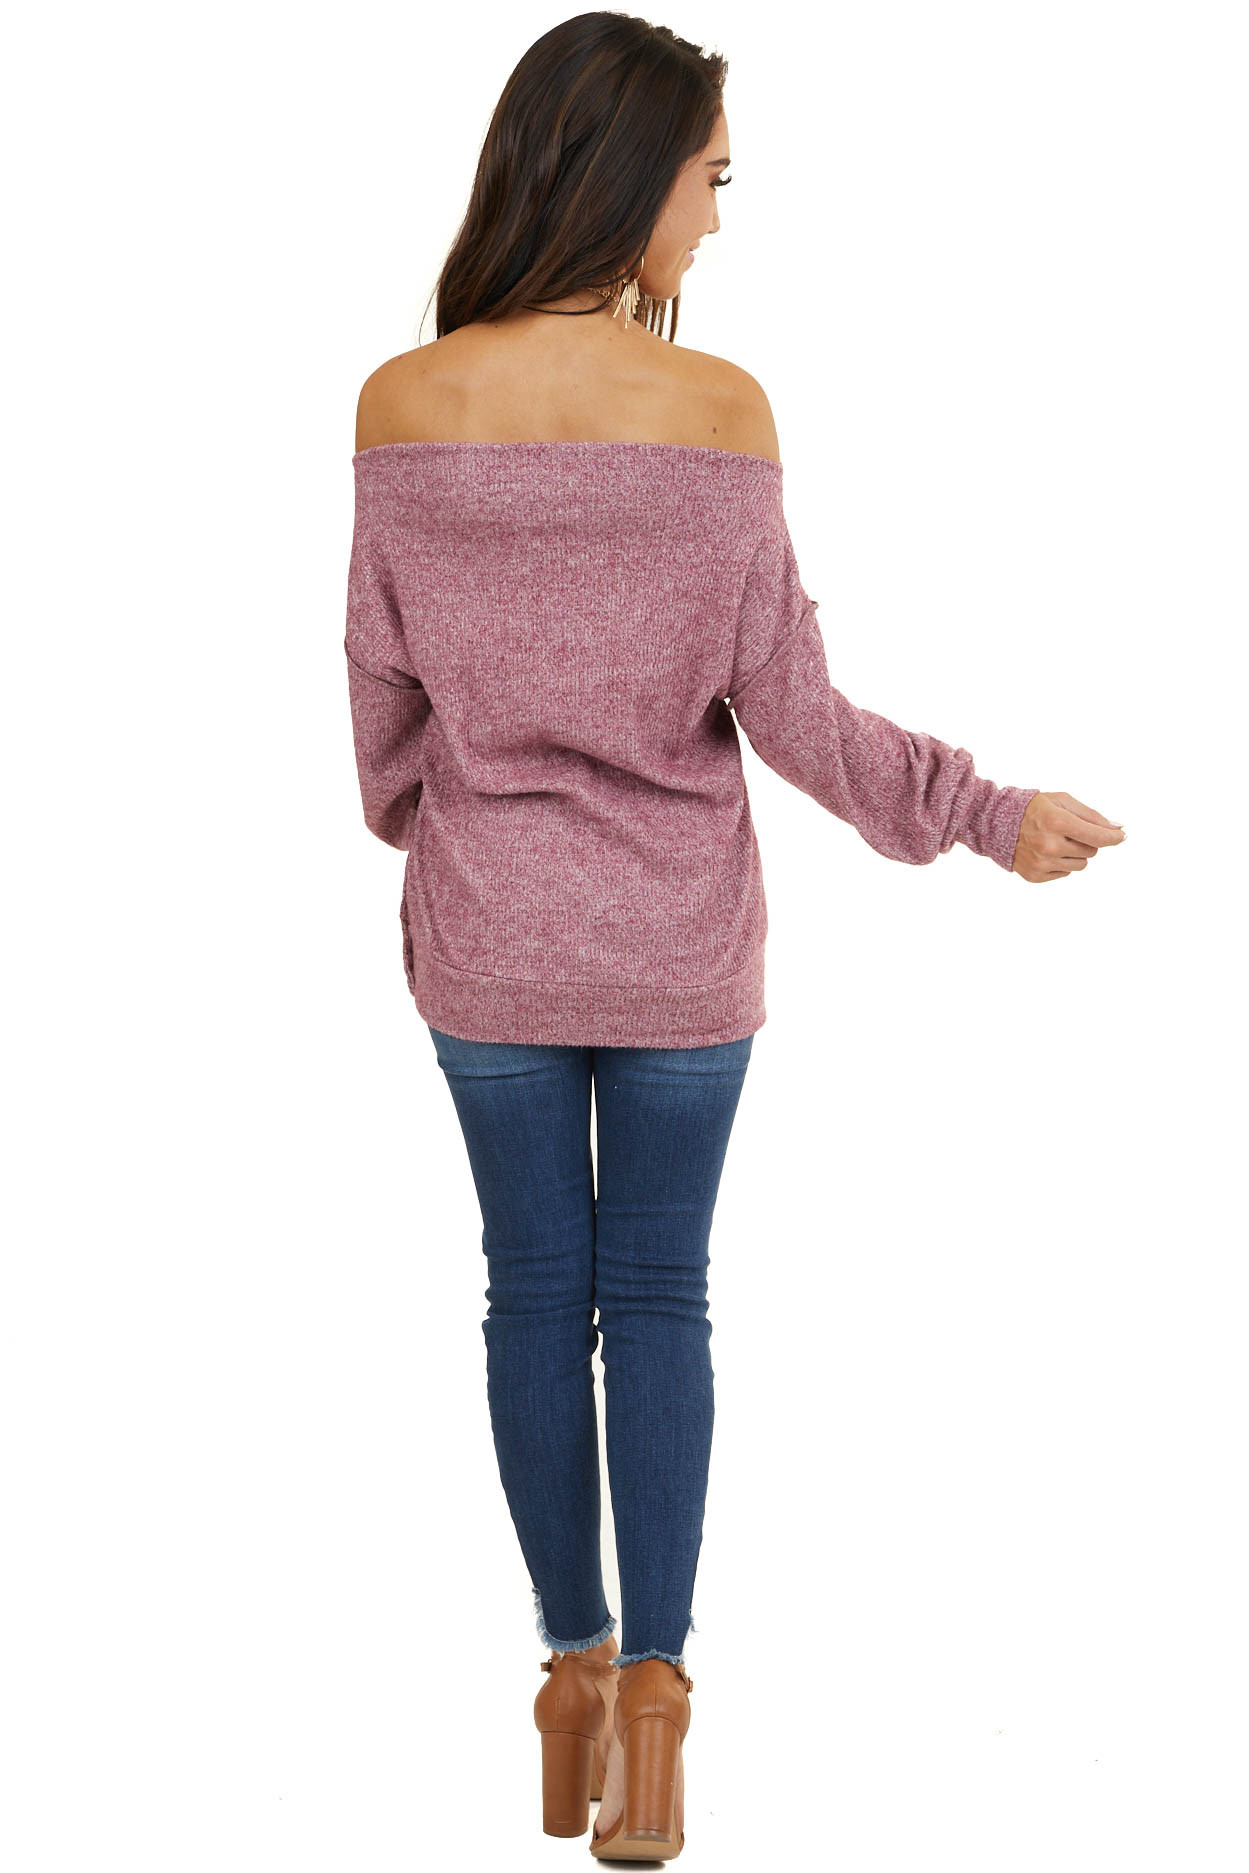 Heathered Mauve Off the Shoulder Ribbed Long Sleeve Sweater